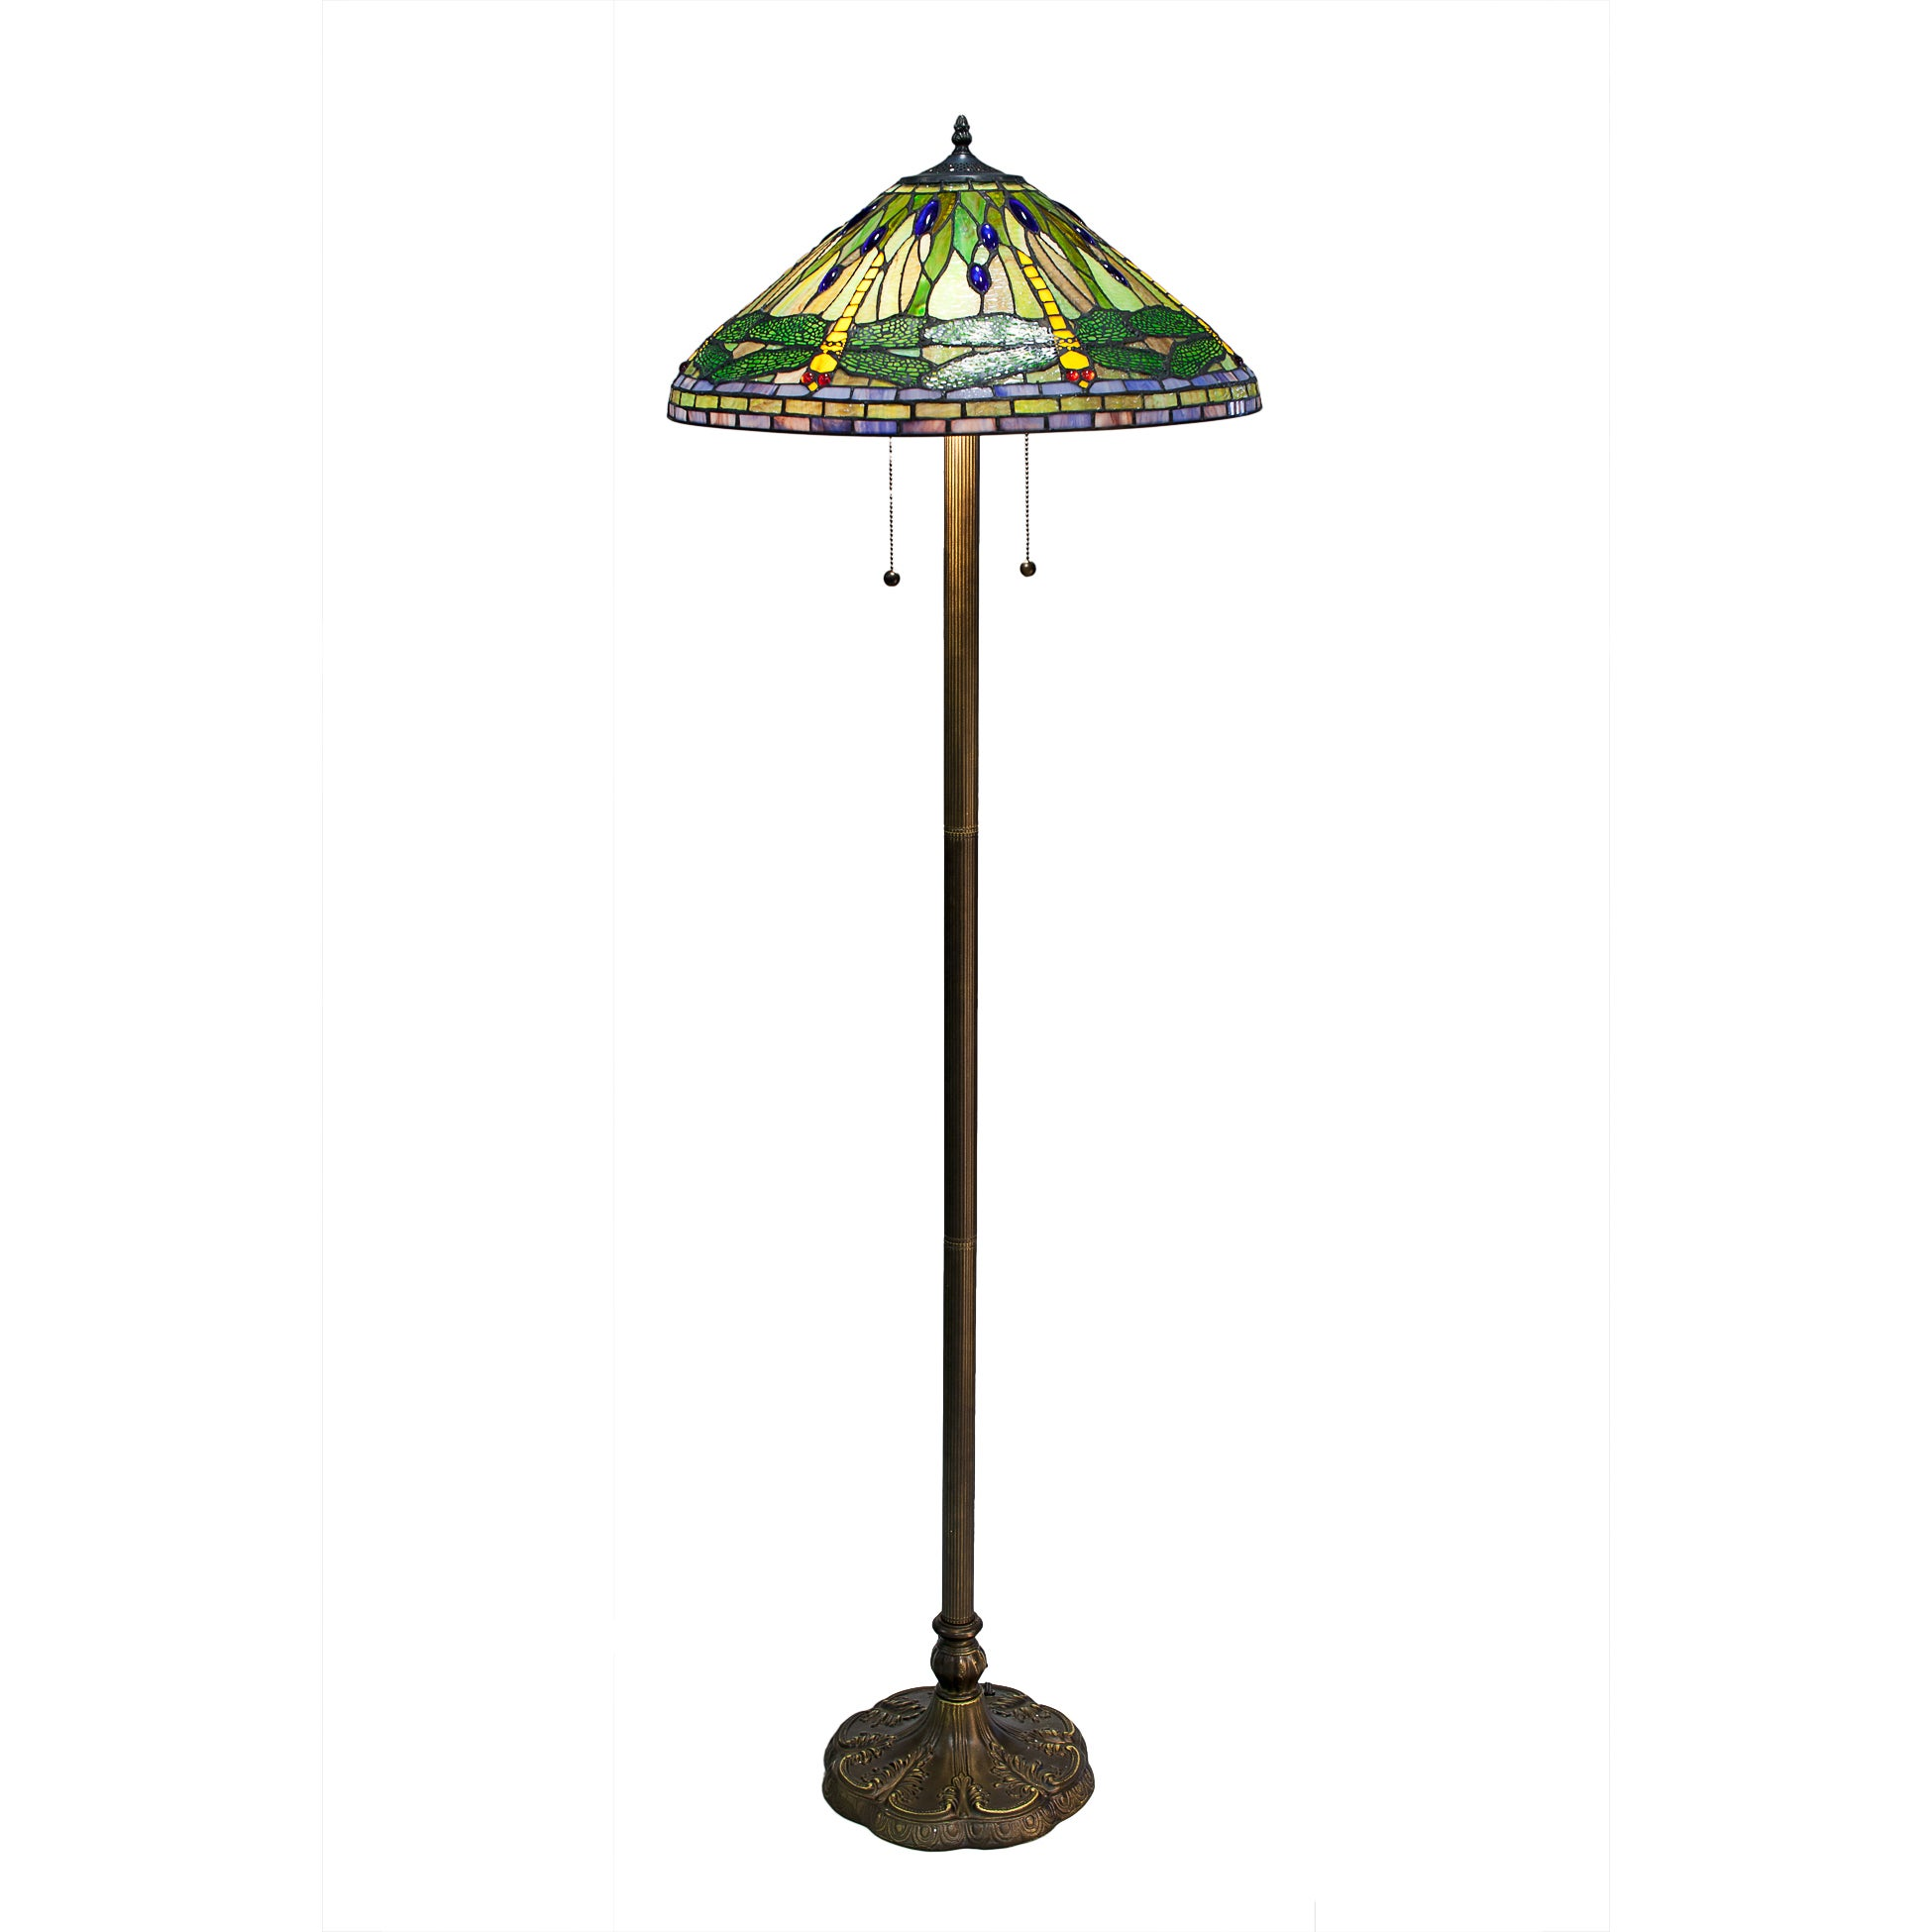 Tiffany style Green Dragonfly Floor Lamp Free Shipping Today